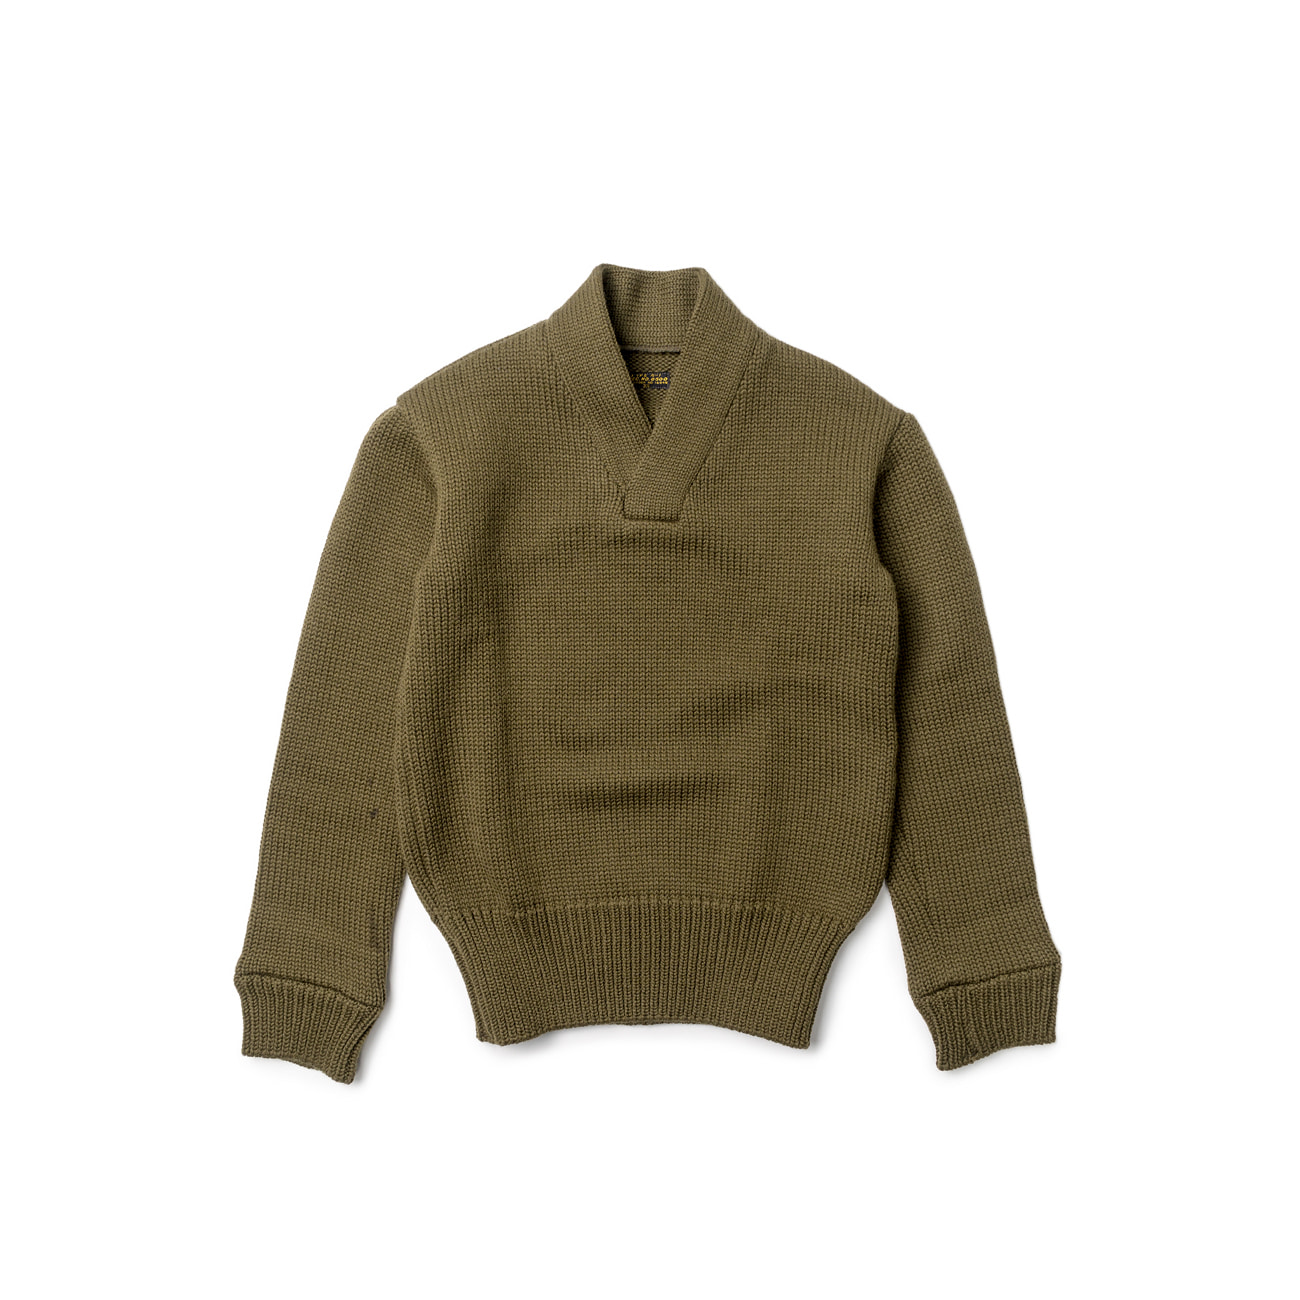 Type A-1 Sweater,Aircraft Mechanics